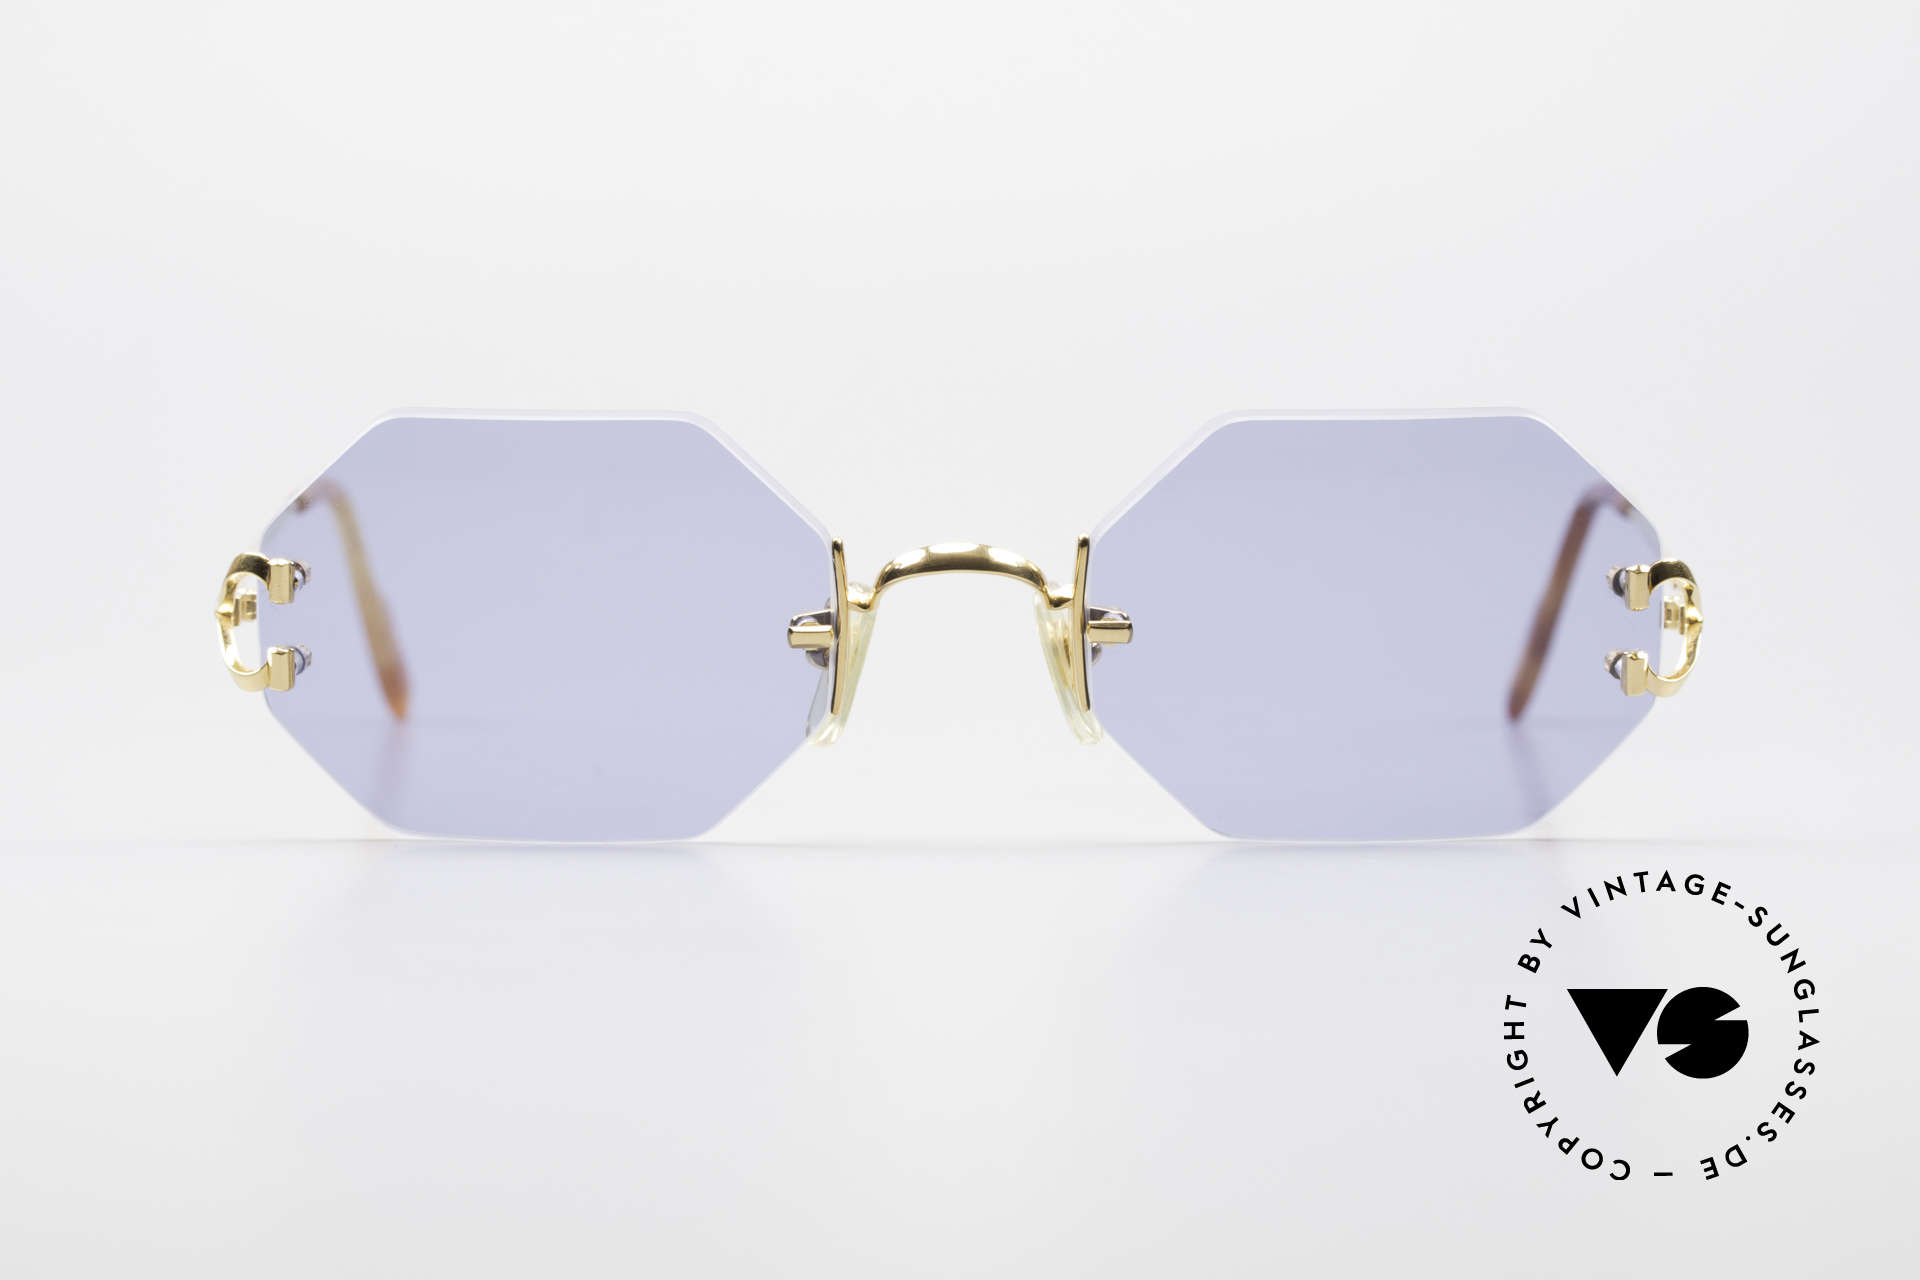 Cartier Rimless Octag Octag Shades One of a Kind, model of the rimless series with new OCTAG lenses, Made for Men and Women